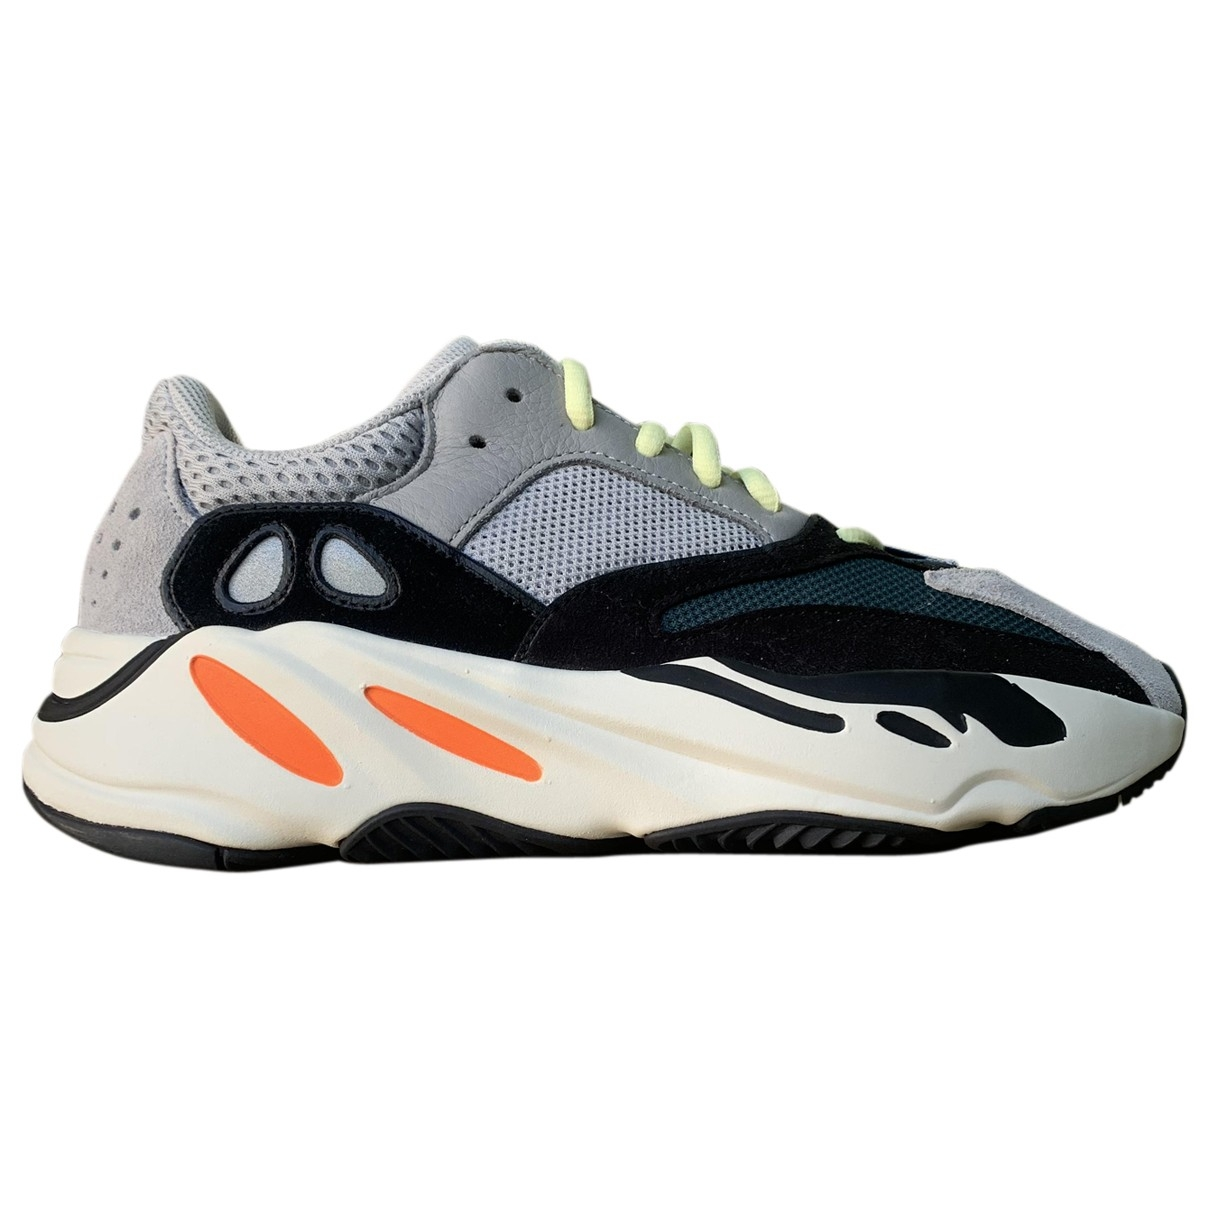 Yeezy X Adidas Boost 700 V1  Grey Suede Trainers for Men 40.5 EU